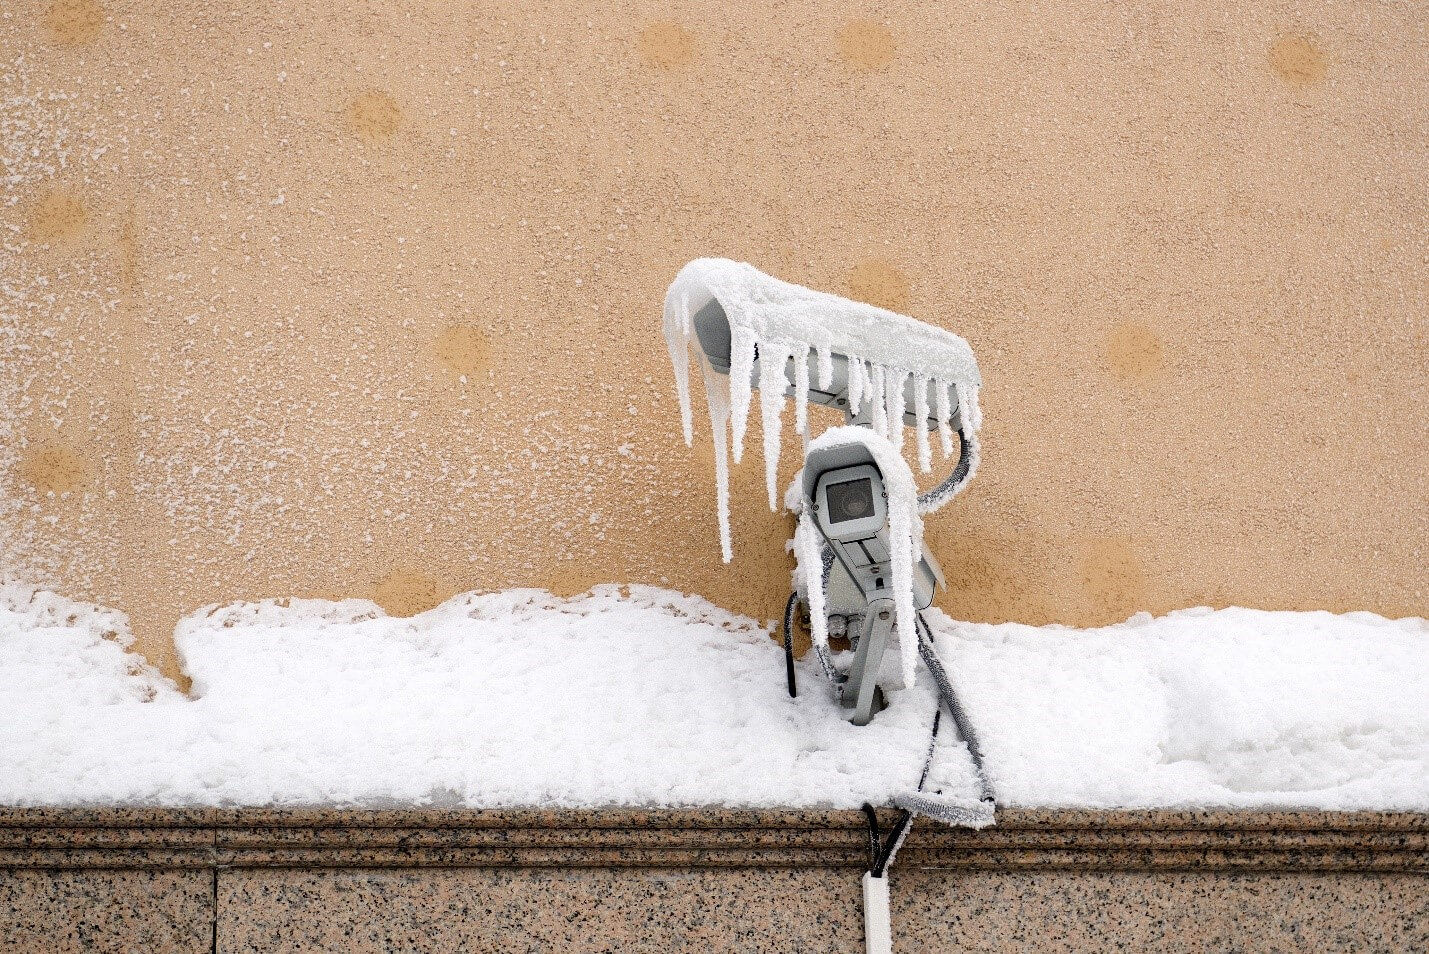 Tips for protecting security products during inclement weather